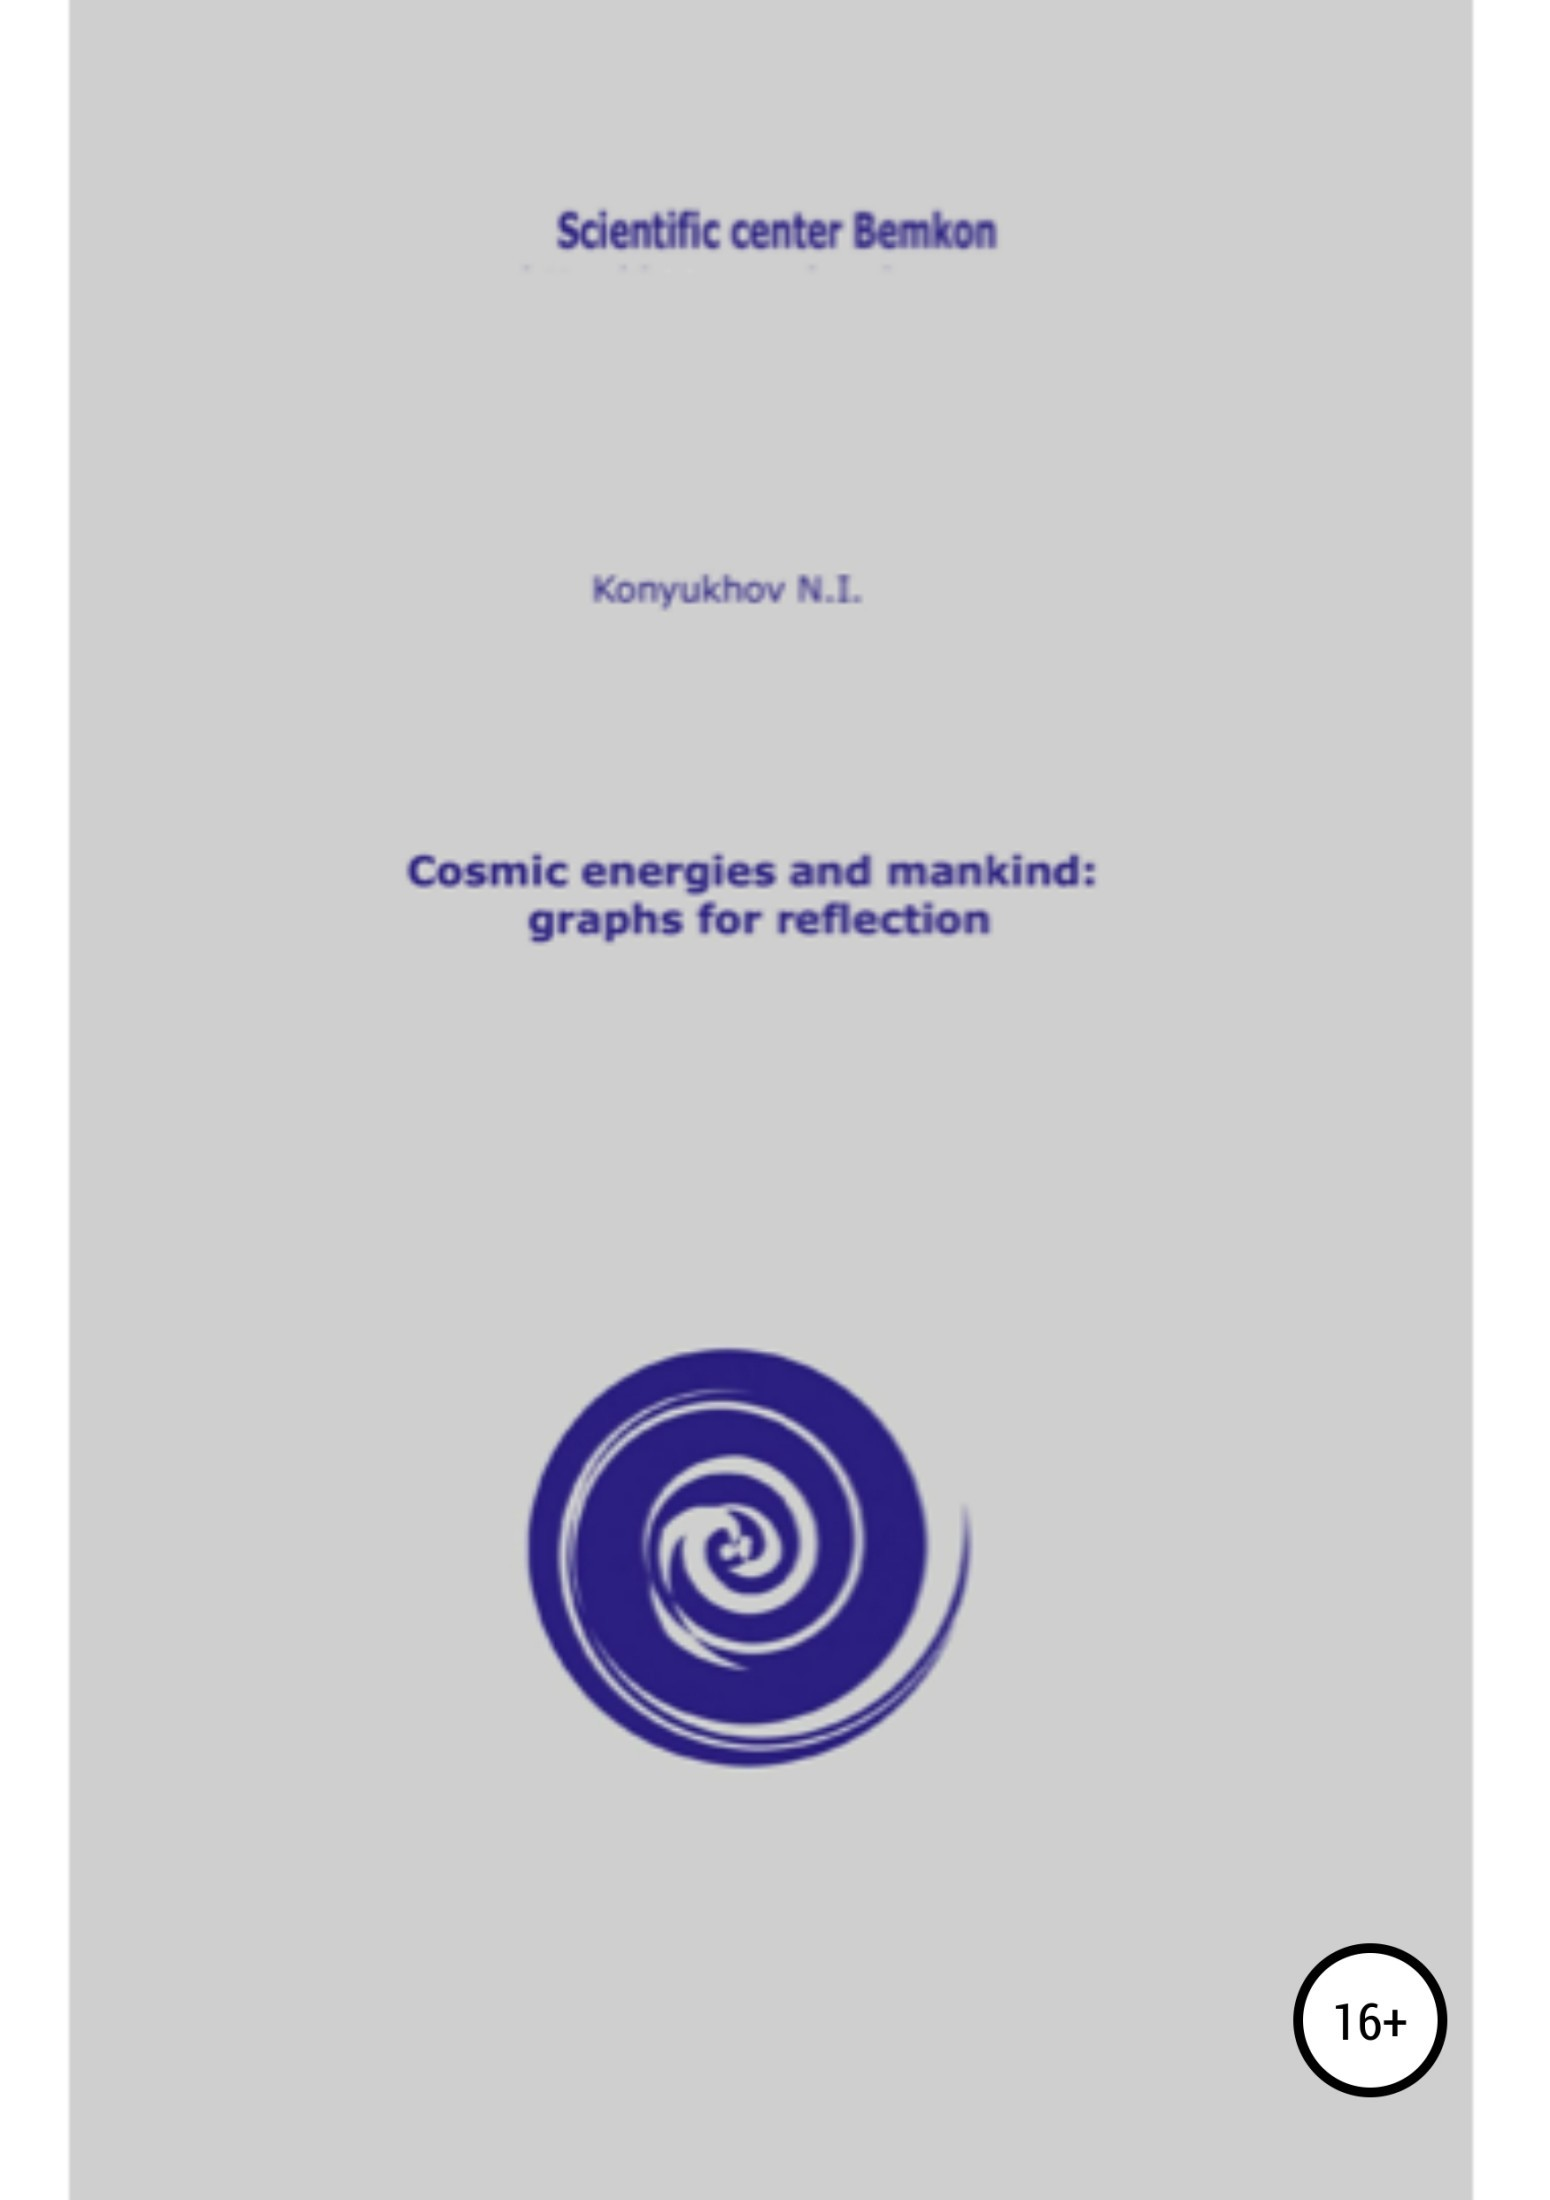 Cosmic energies and mankind: graphs for reflection